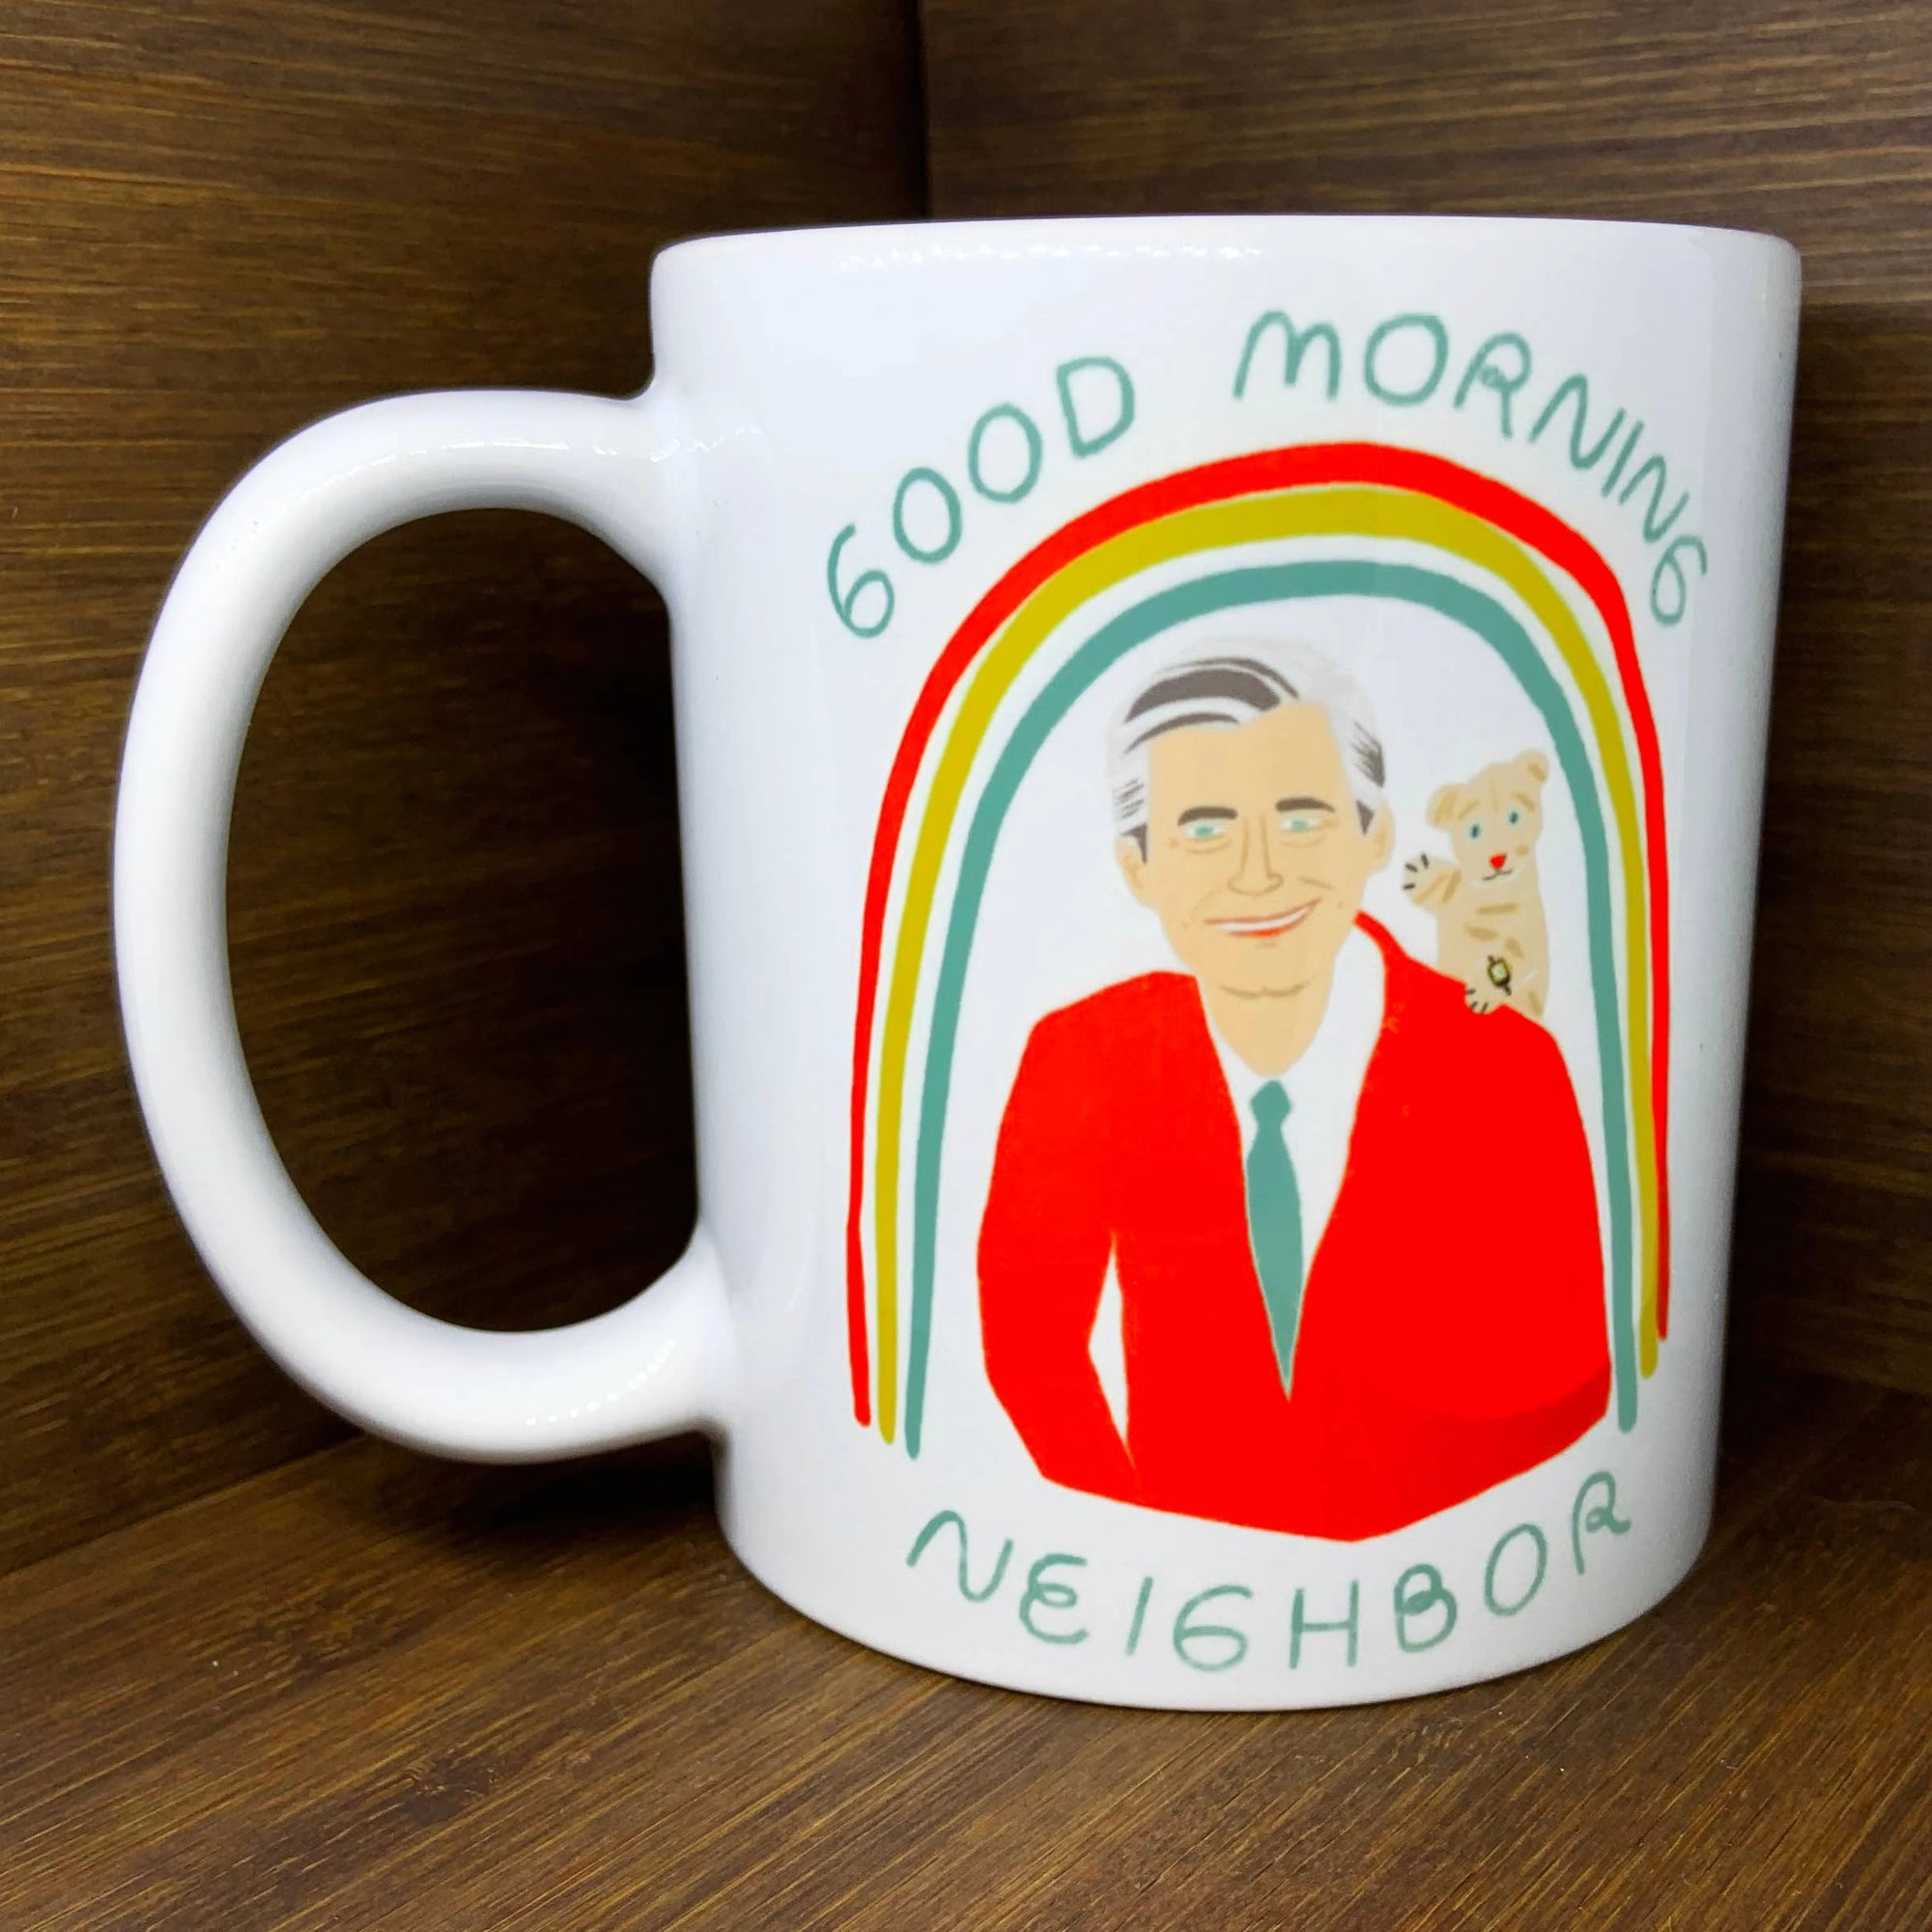 Citizen Ruth: Mr. Rogers Mug